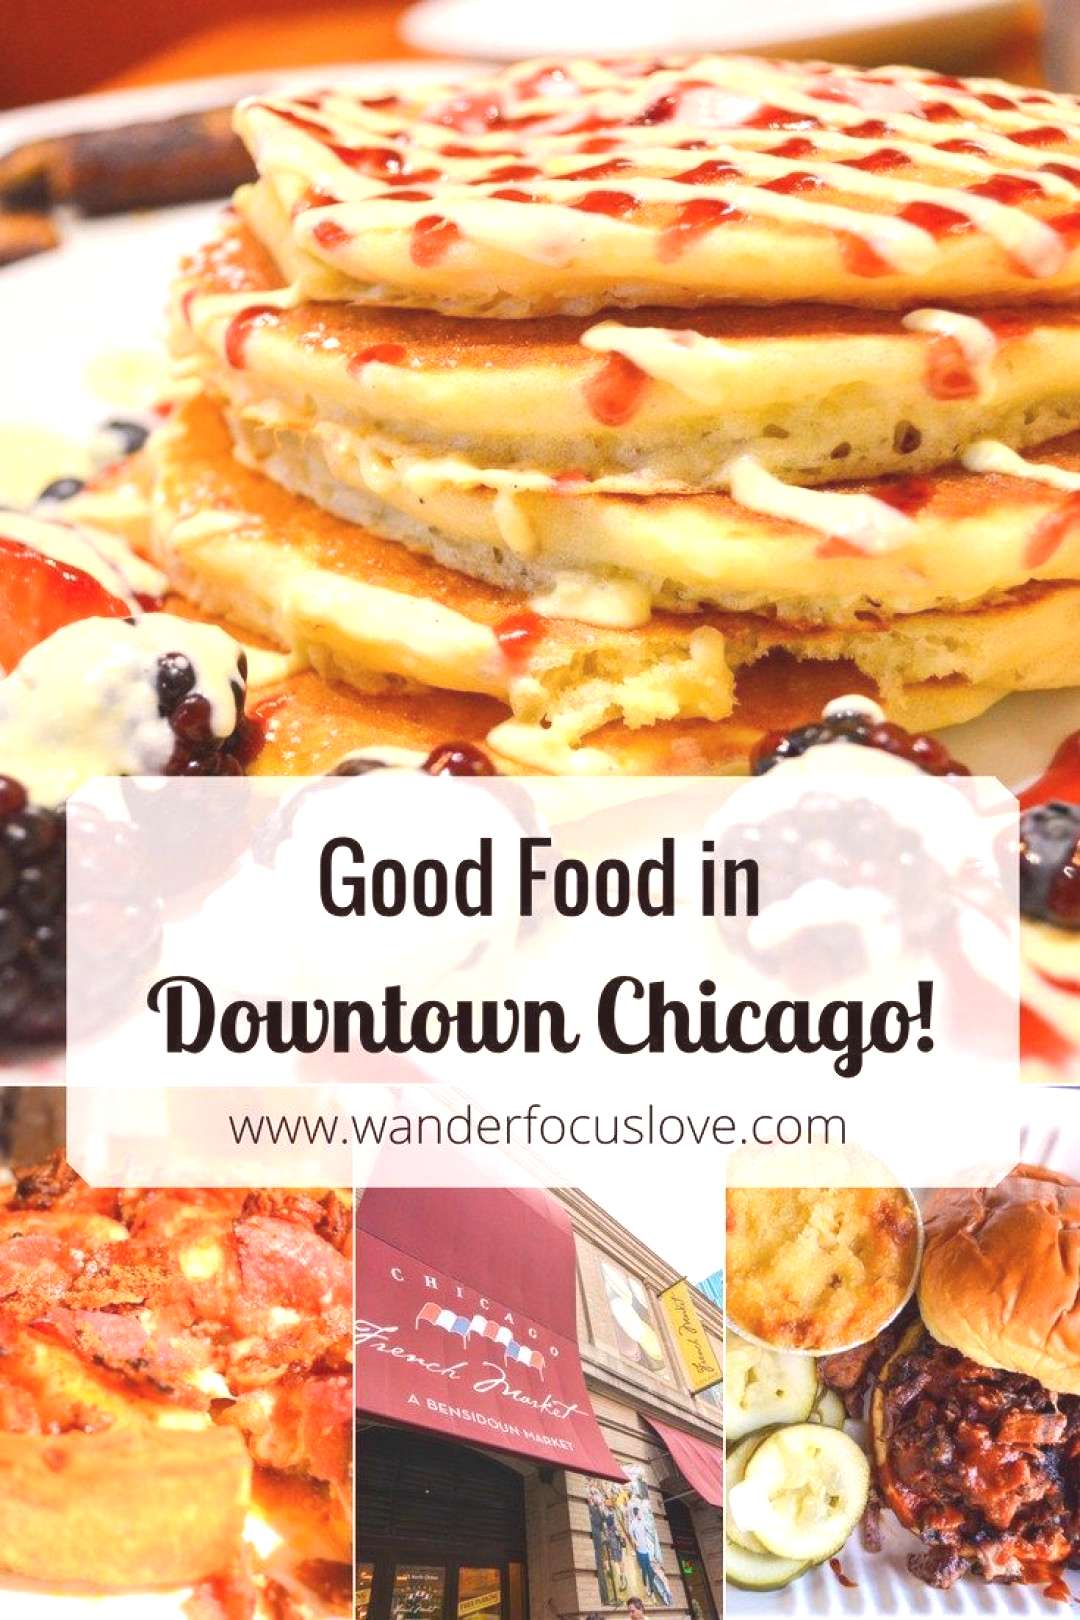 25 Most Instagrammable Restaurants, Bars, and Cafes in Chicago - MVMT Blog pinterest pin good food